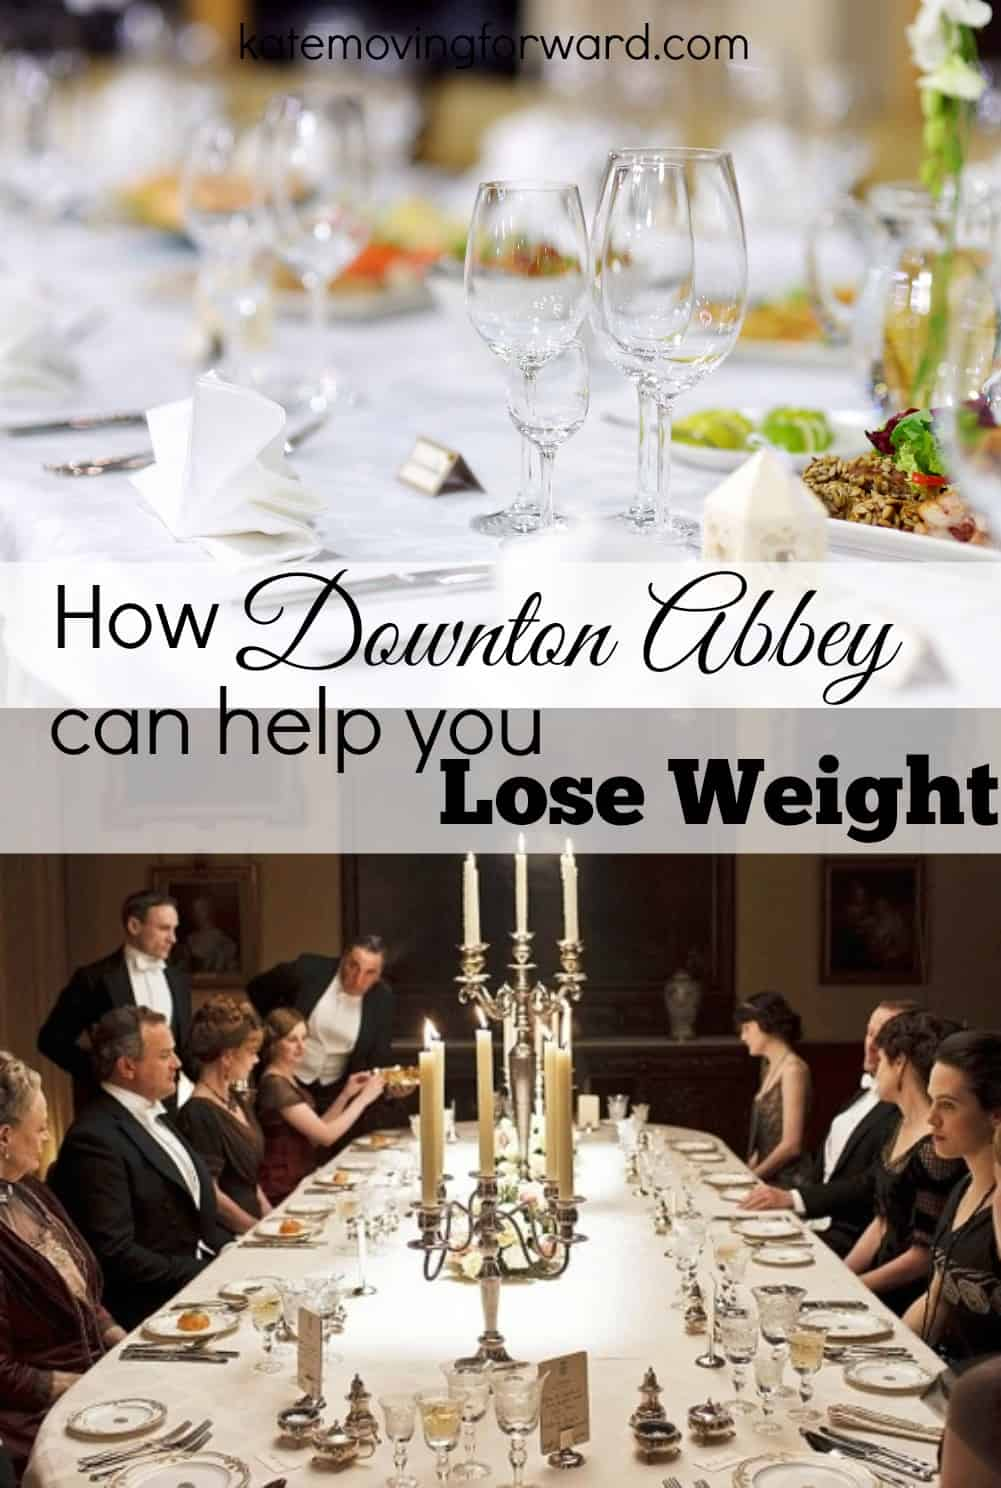 How Downton Abbey Can Help You Lose Weight